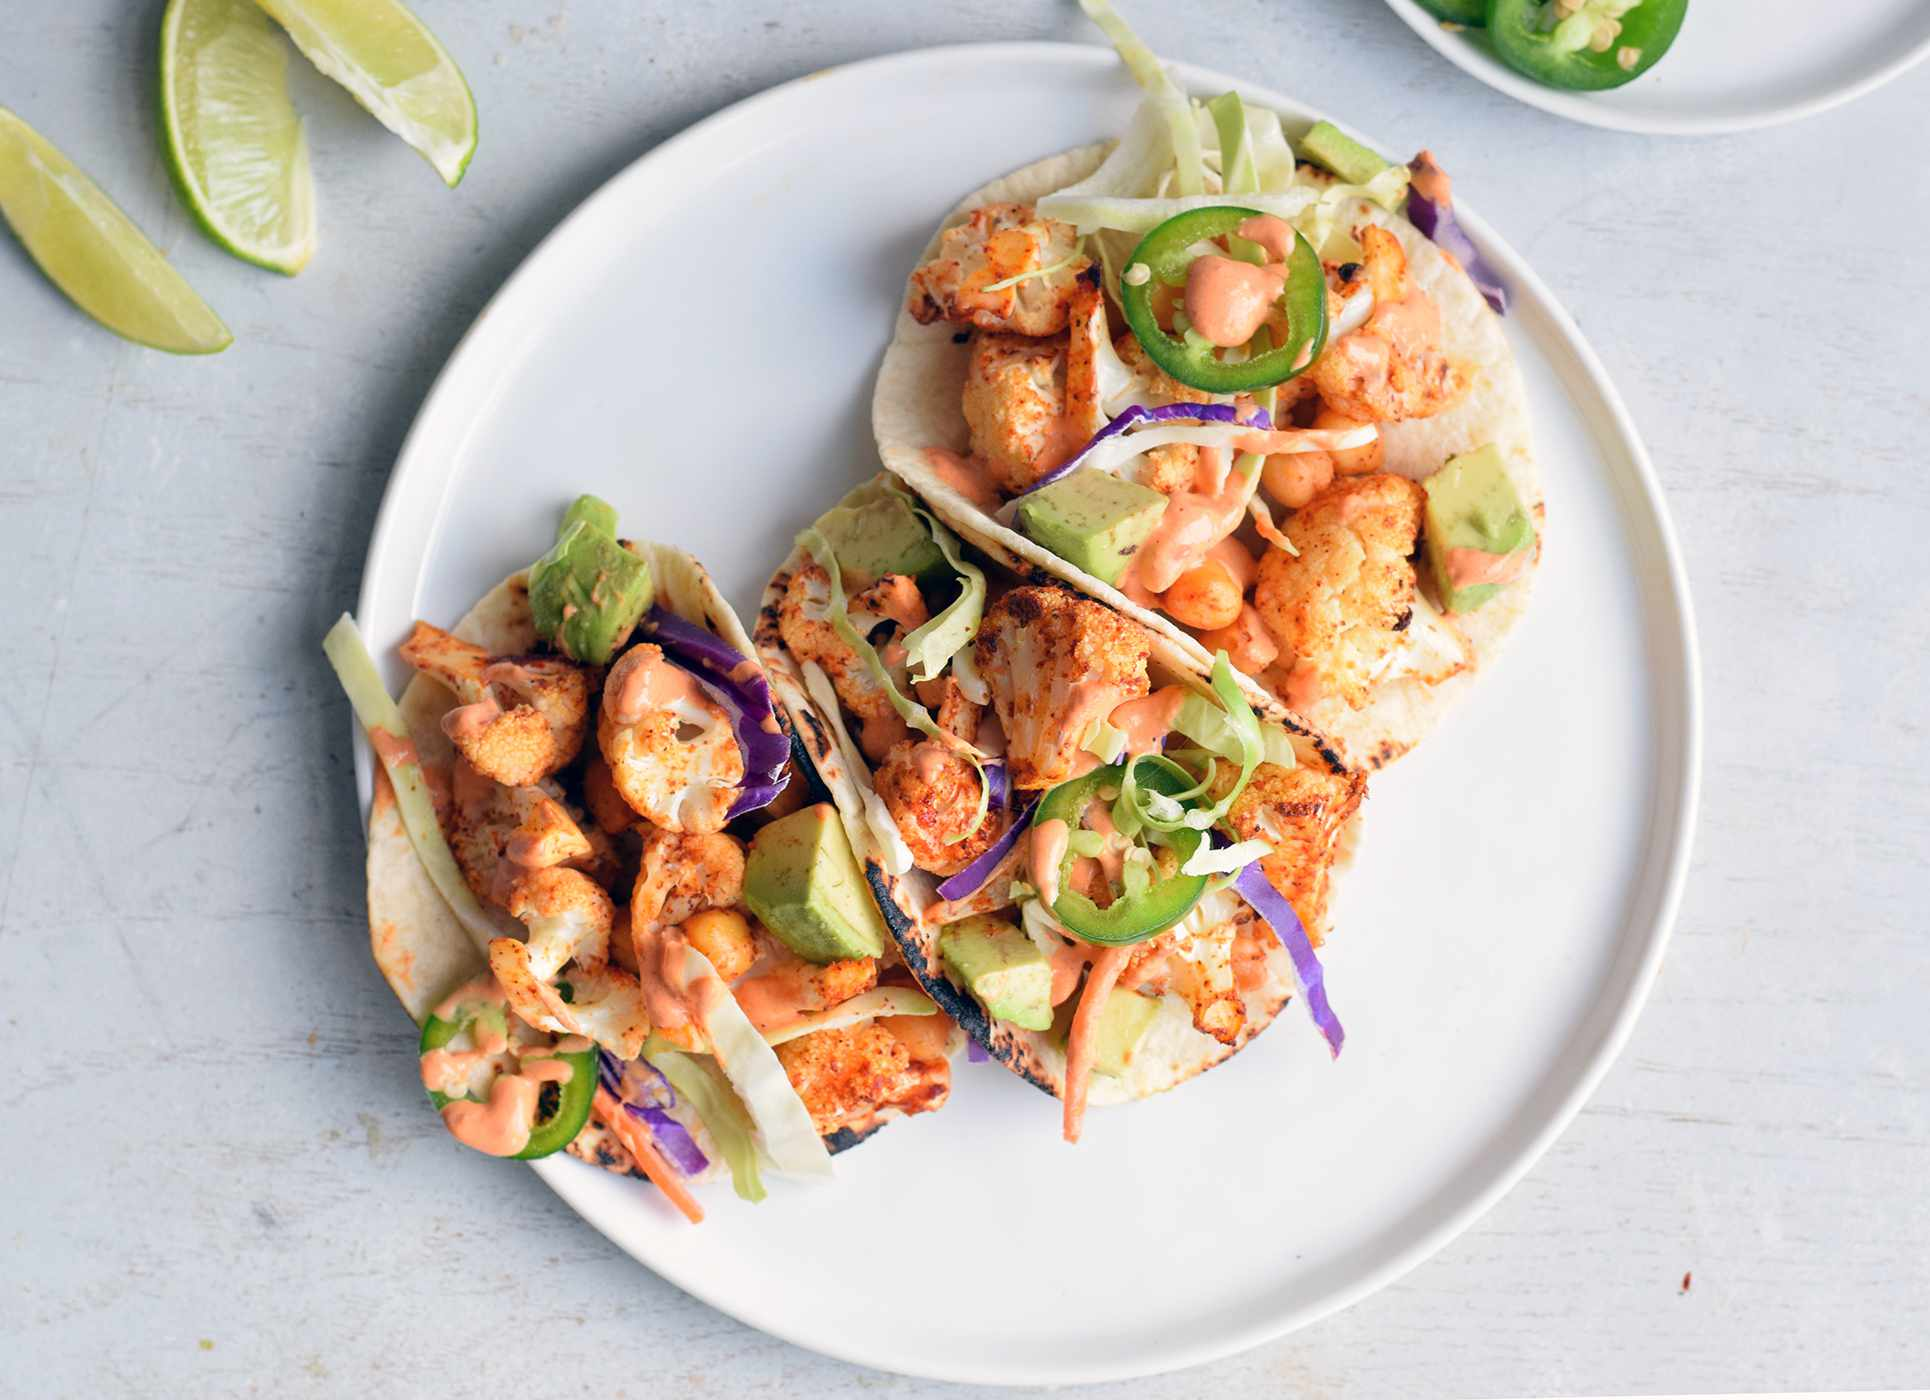 cauliflower tacos served on a plate